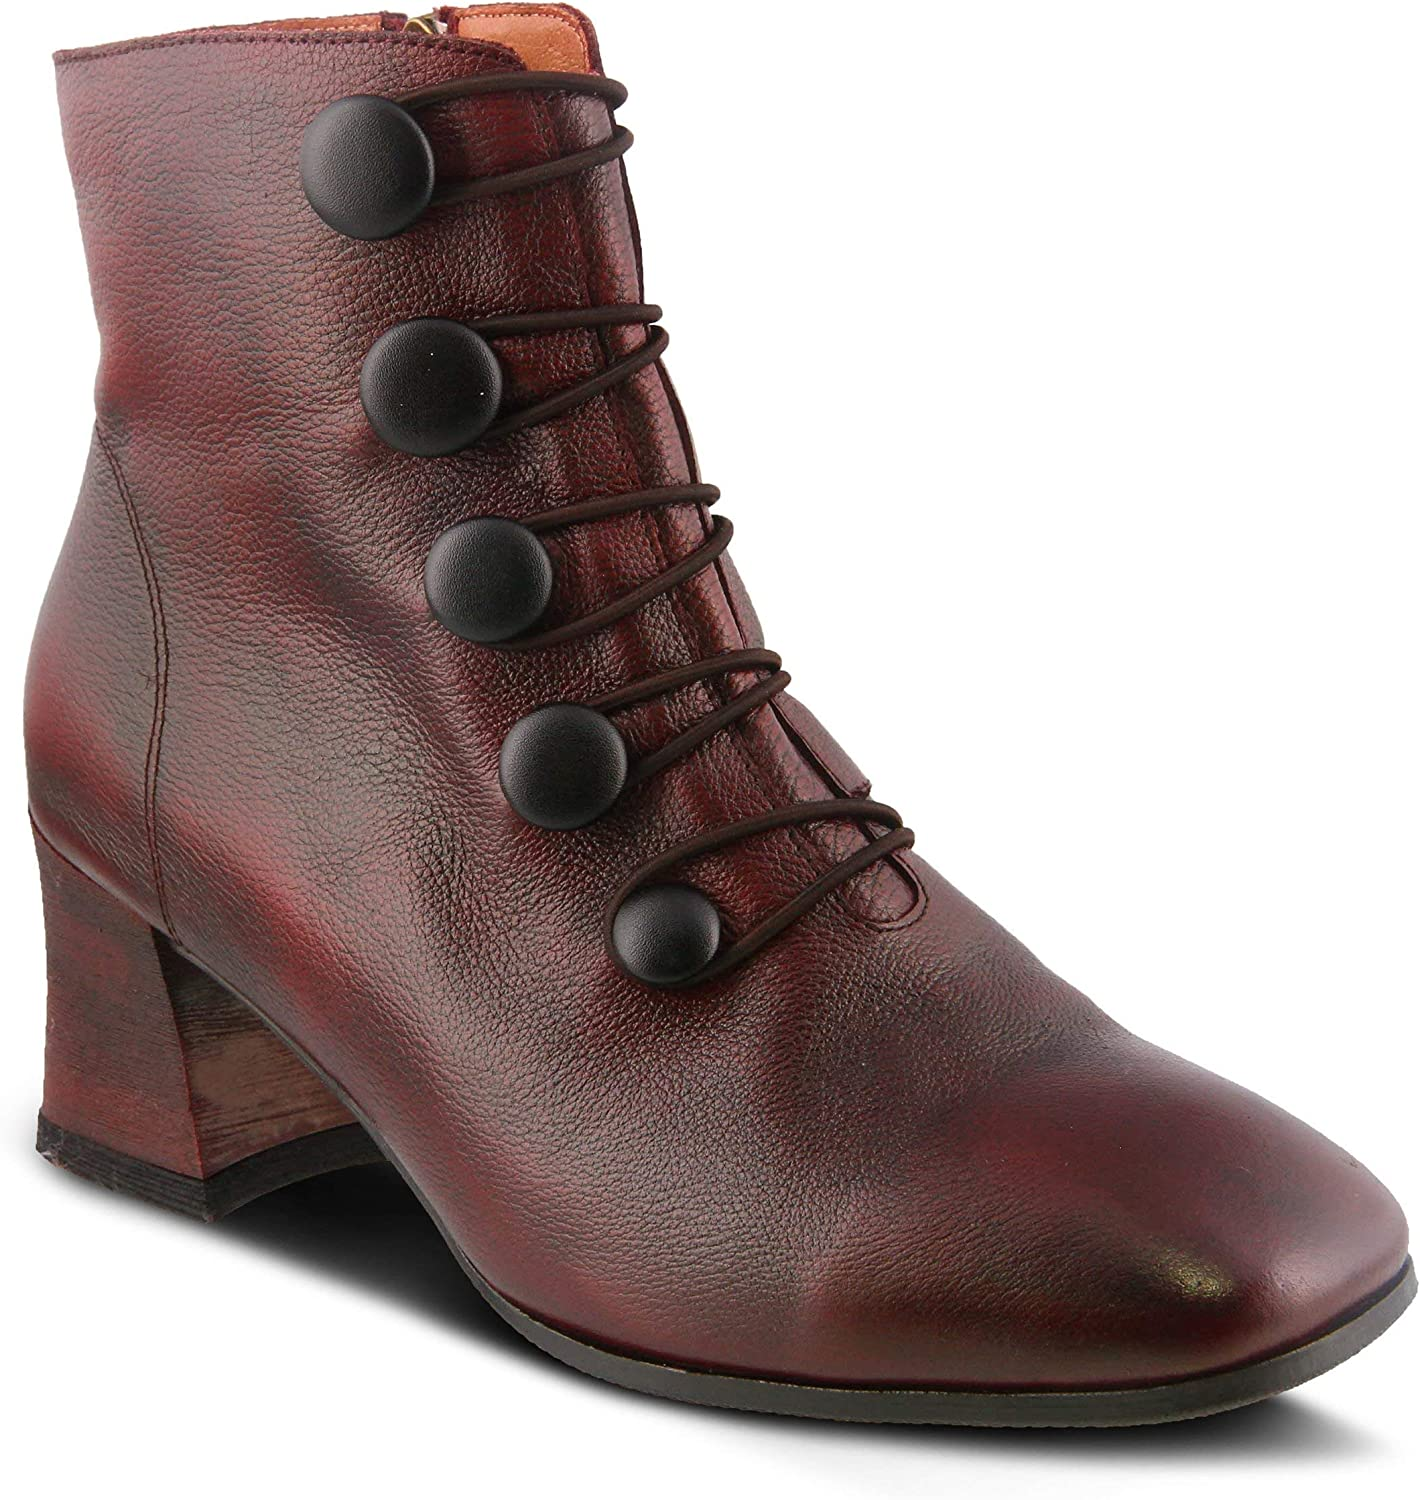 L'Artiste by Spring Step womens Boot